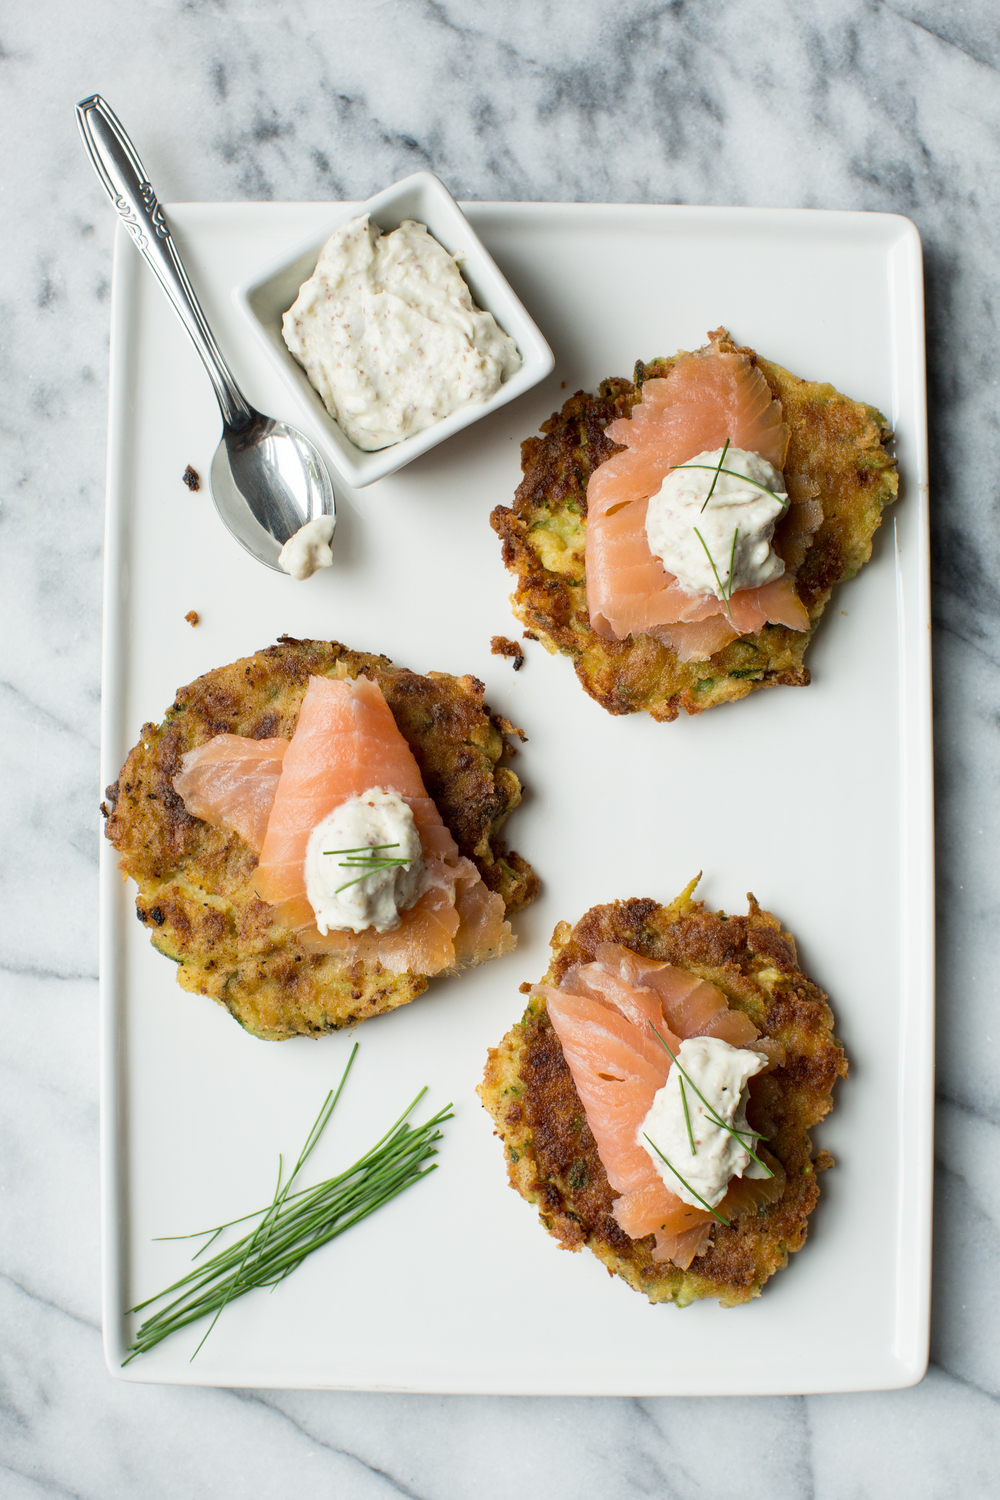 Zucchini and chickpea fritters with smoked salmon a thought for food the whole weekend i had been focused on my work photographing the worlds 50 best forumfinder Images